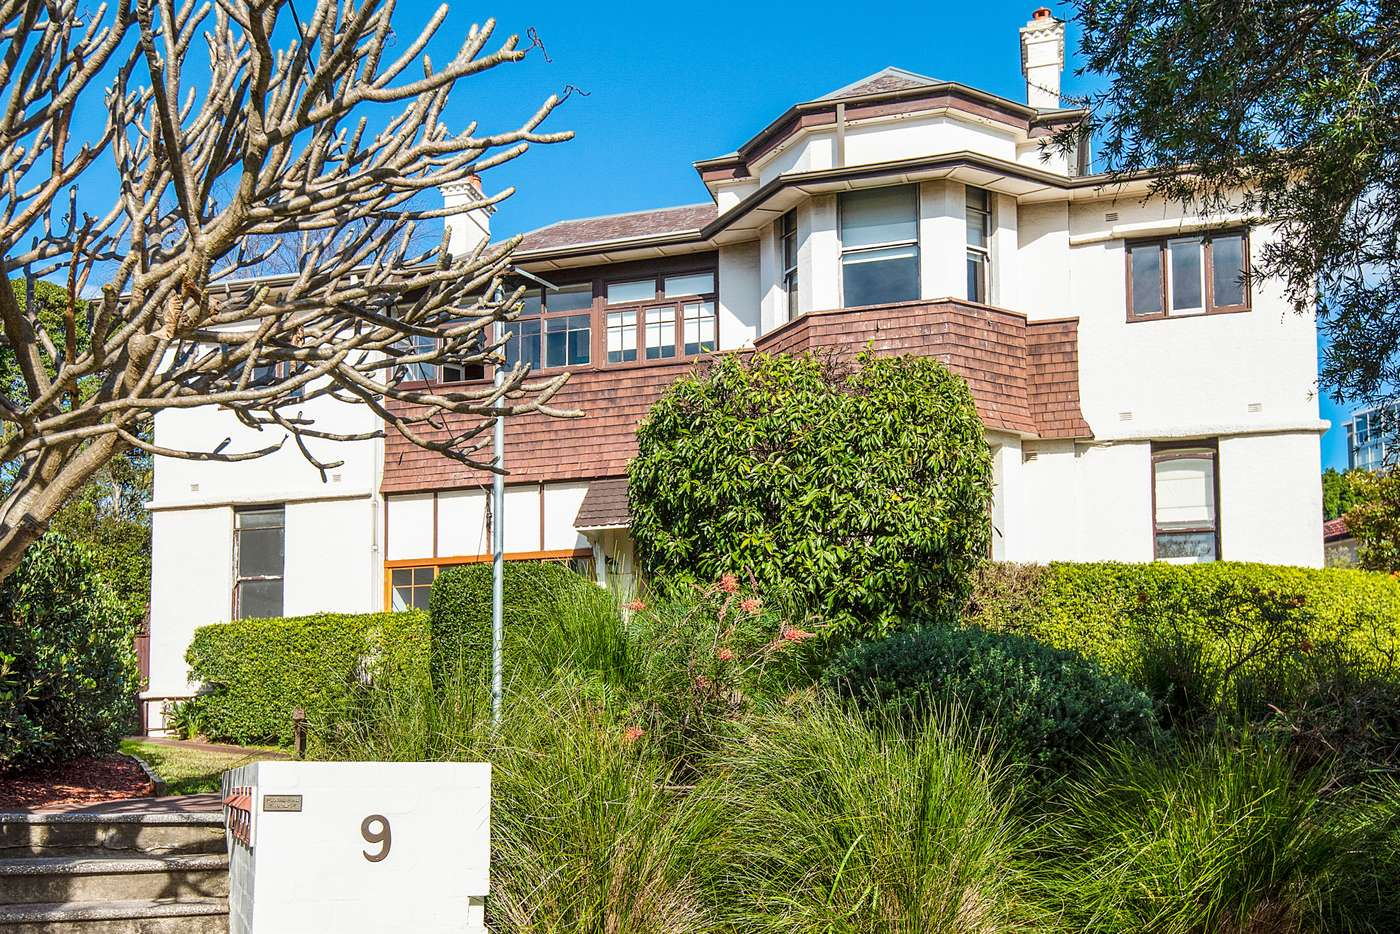 Main view of Homely apartment listing, 5/9 Davidson Parade, Cremorne NSW 2090